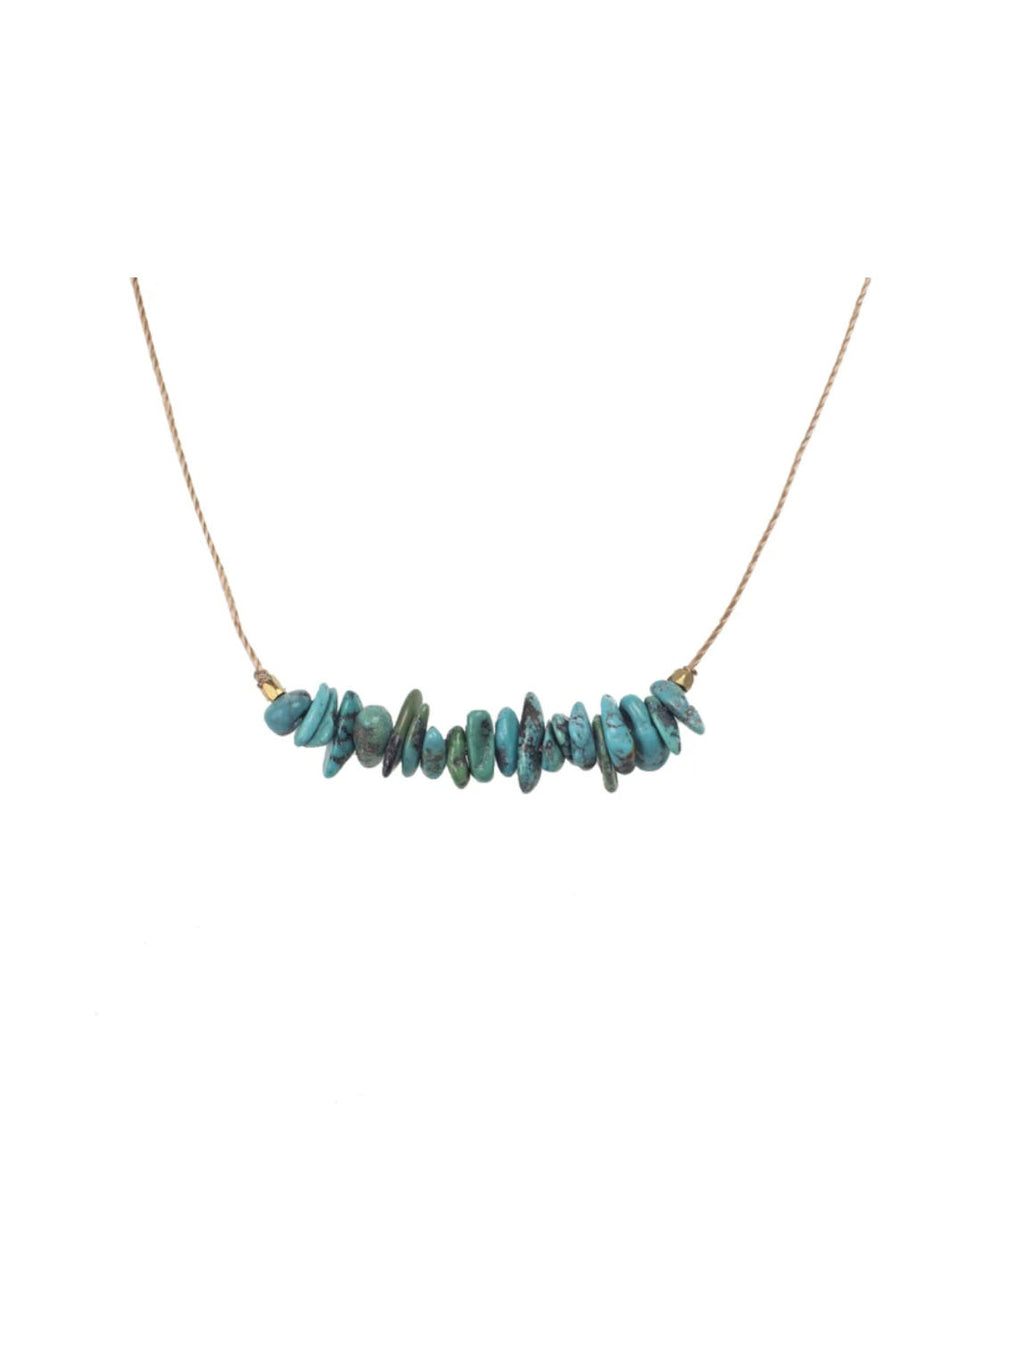 "SoulKu Jewelry Seed ""Friendship"" Necklace in Turquoise"